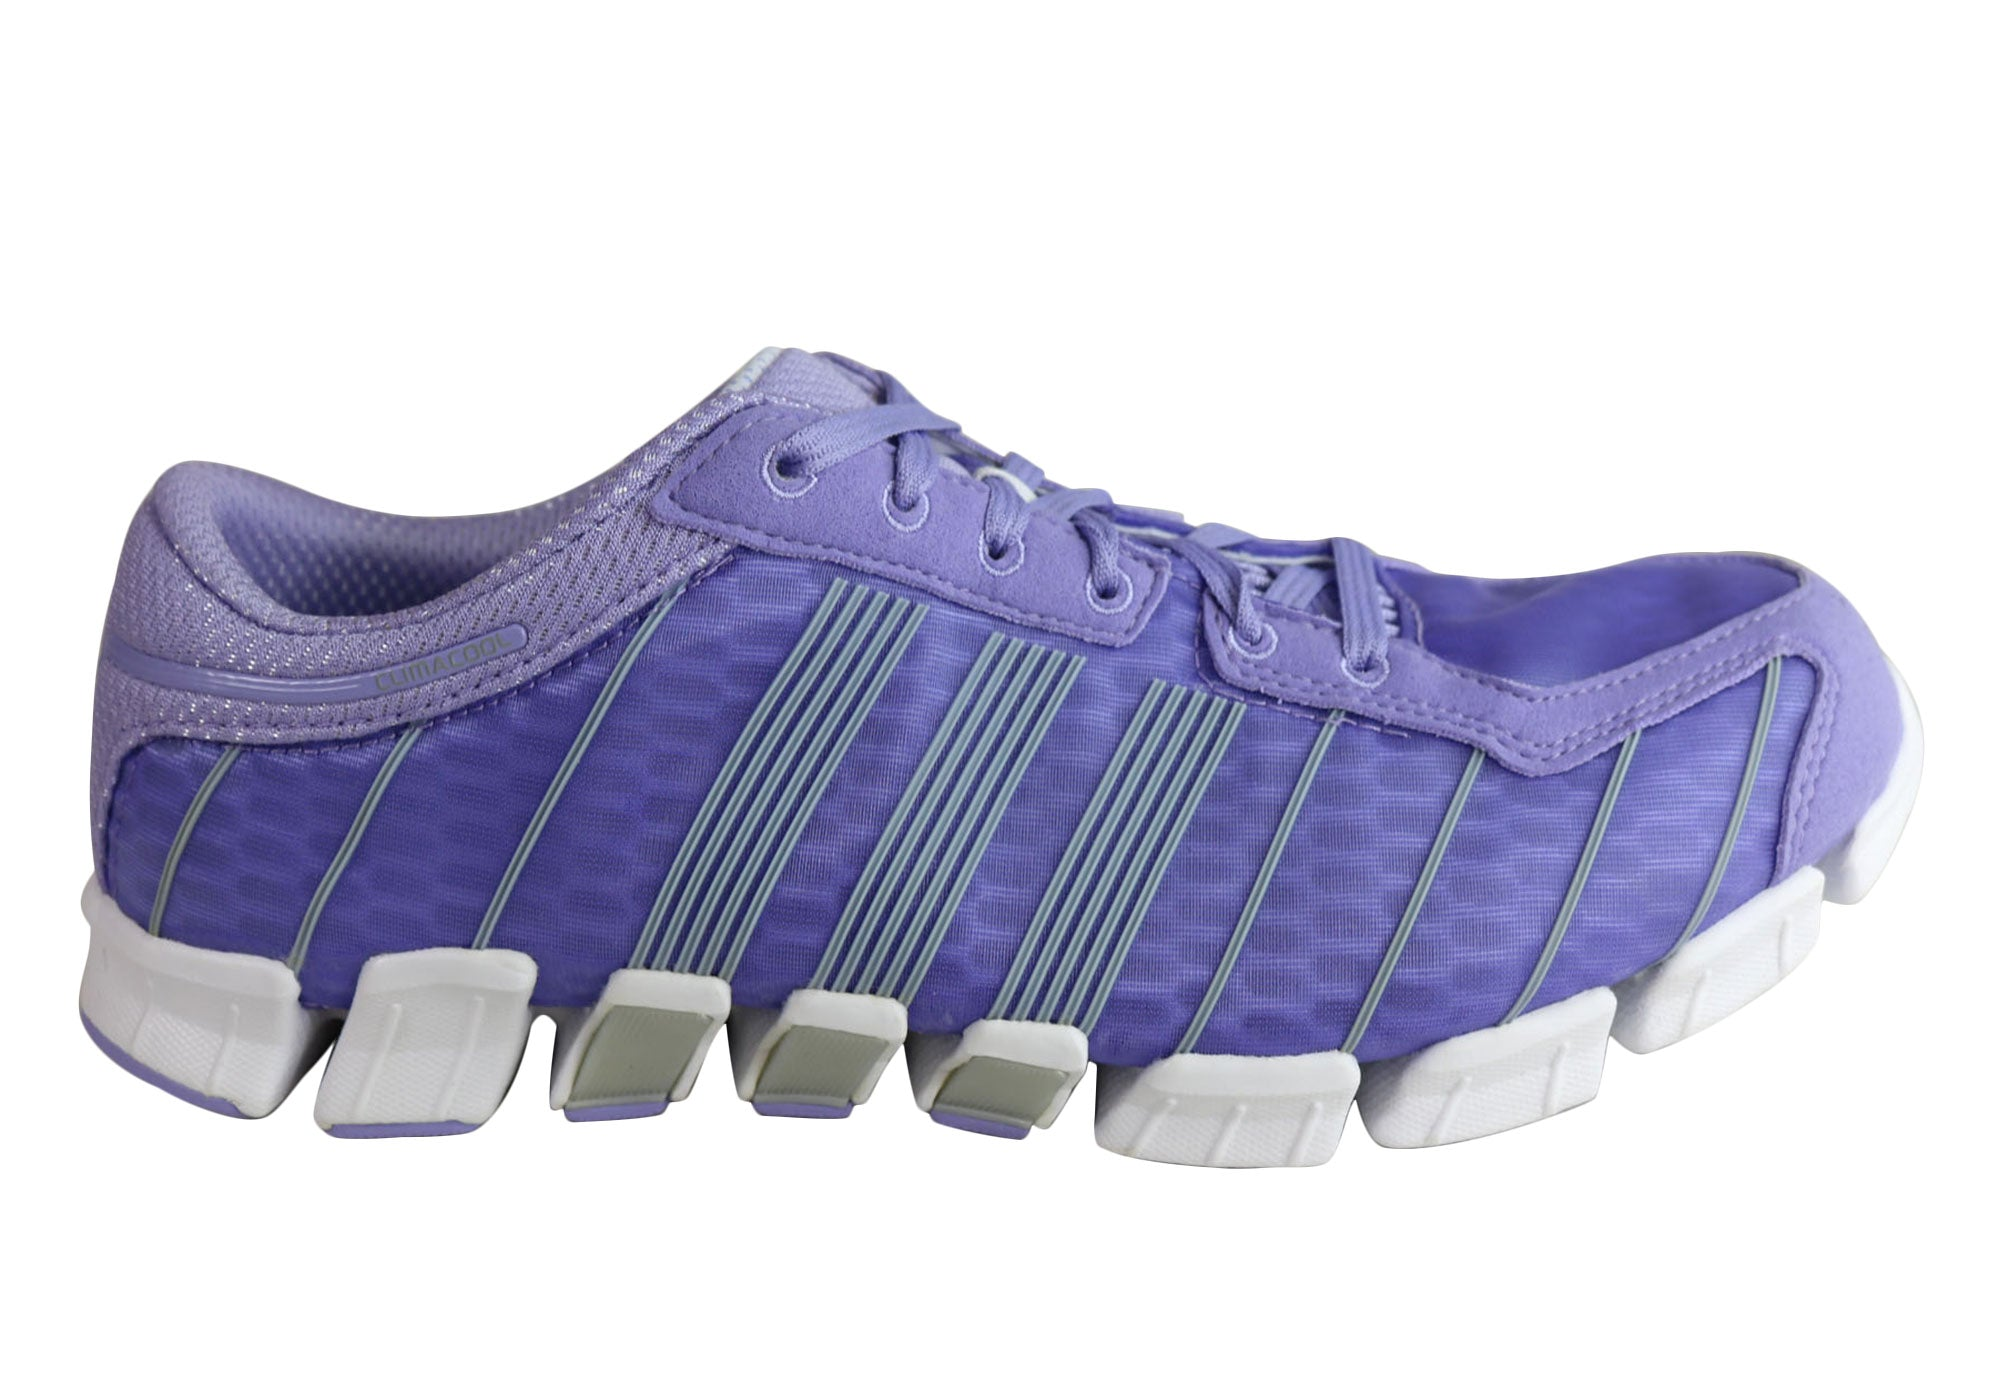 Adidas Womens CC Ride Comfortable Lace Up Athletic Shoes